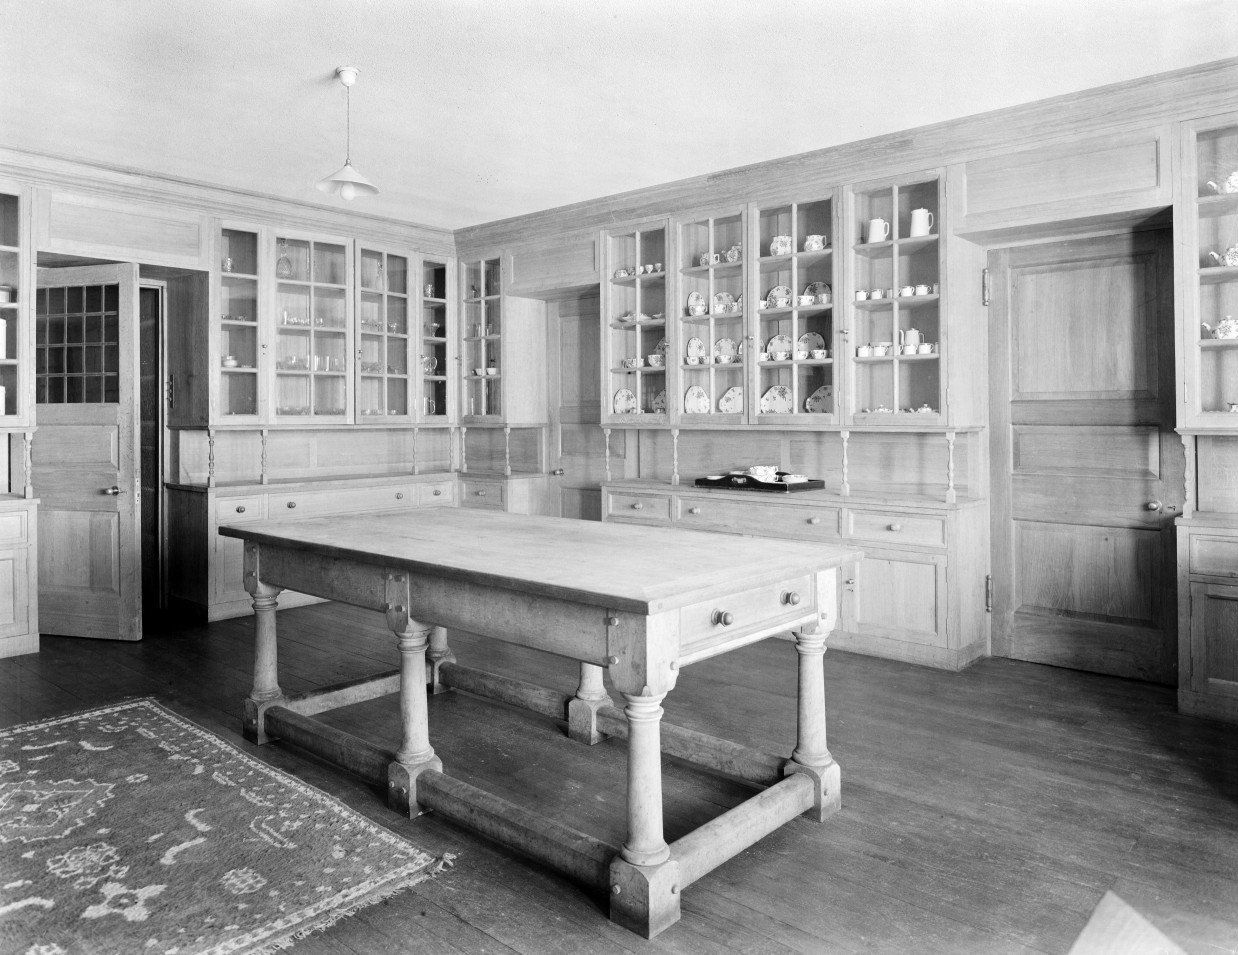 The butler's pantry at Castle Drogo. The castle was begun in 1911 and completed in 1930 to designs by Sir Edwin Lutyens for Julius Drewe. Not Used CL 10/08/1945